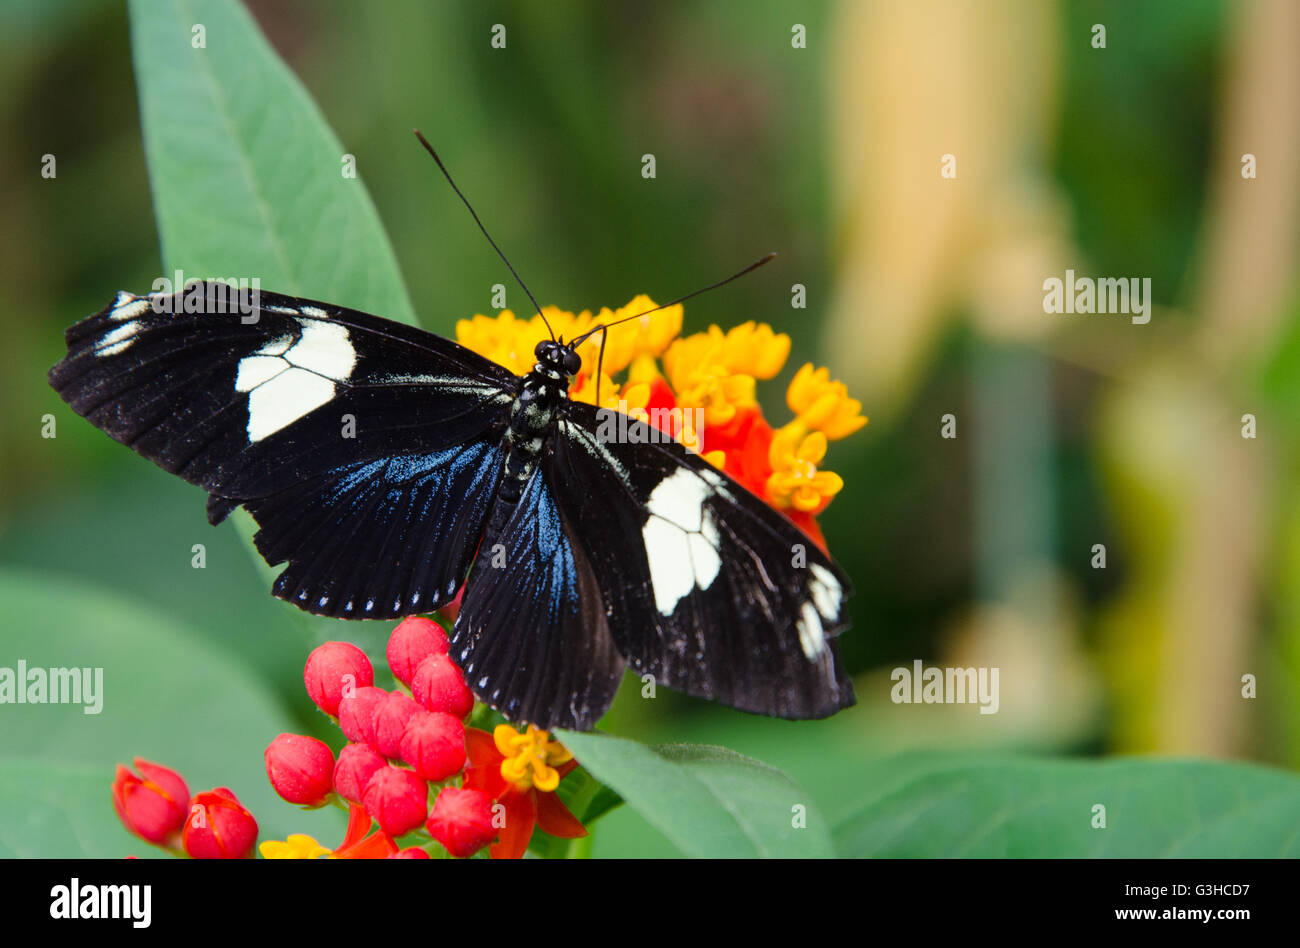 Heliconius doris butterfly sitting on a flower - Stock Image